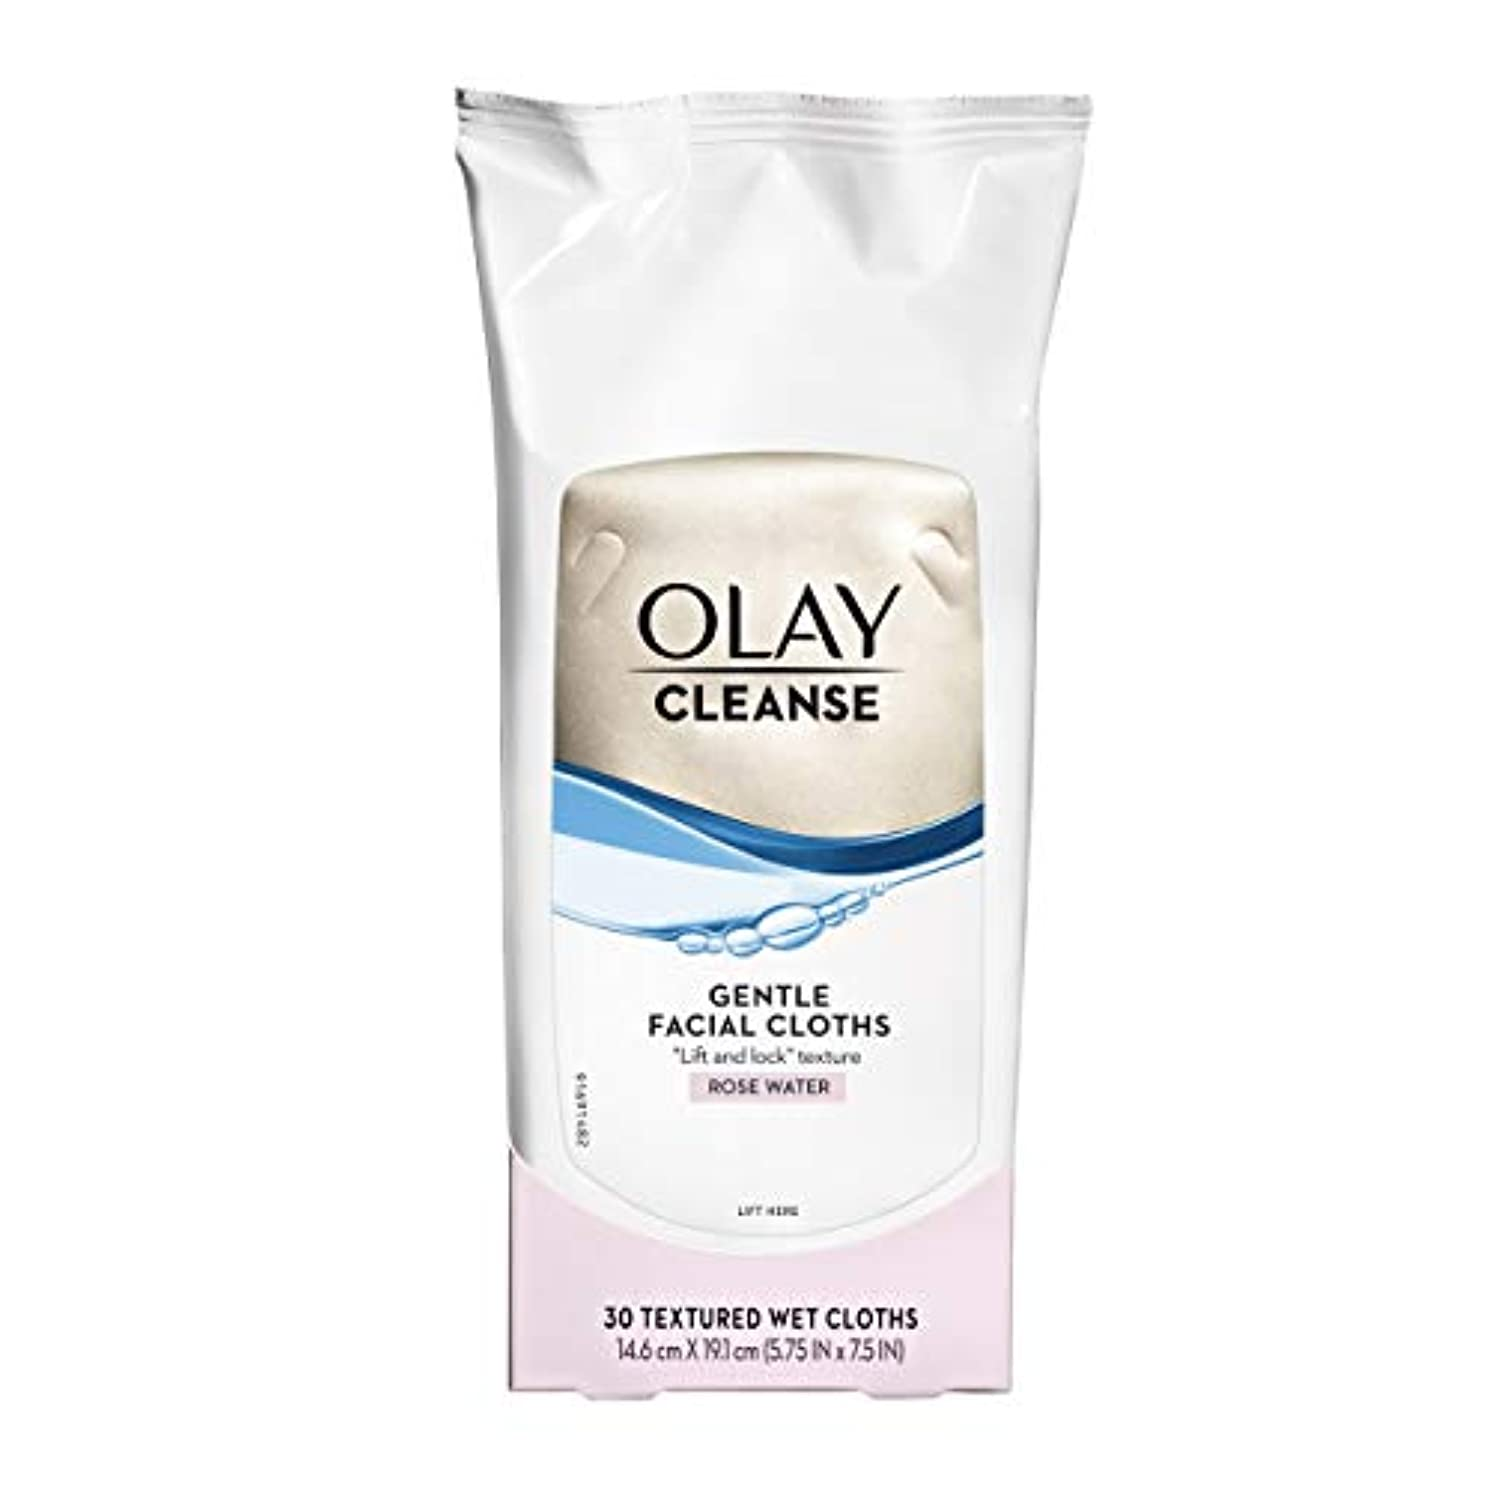 Olay Normal Wet Cleansing Cloths 30 Count (Pack of 3) (並行輸入品)